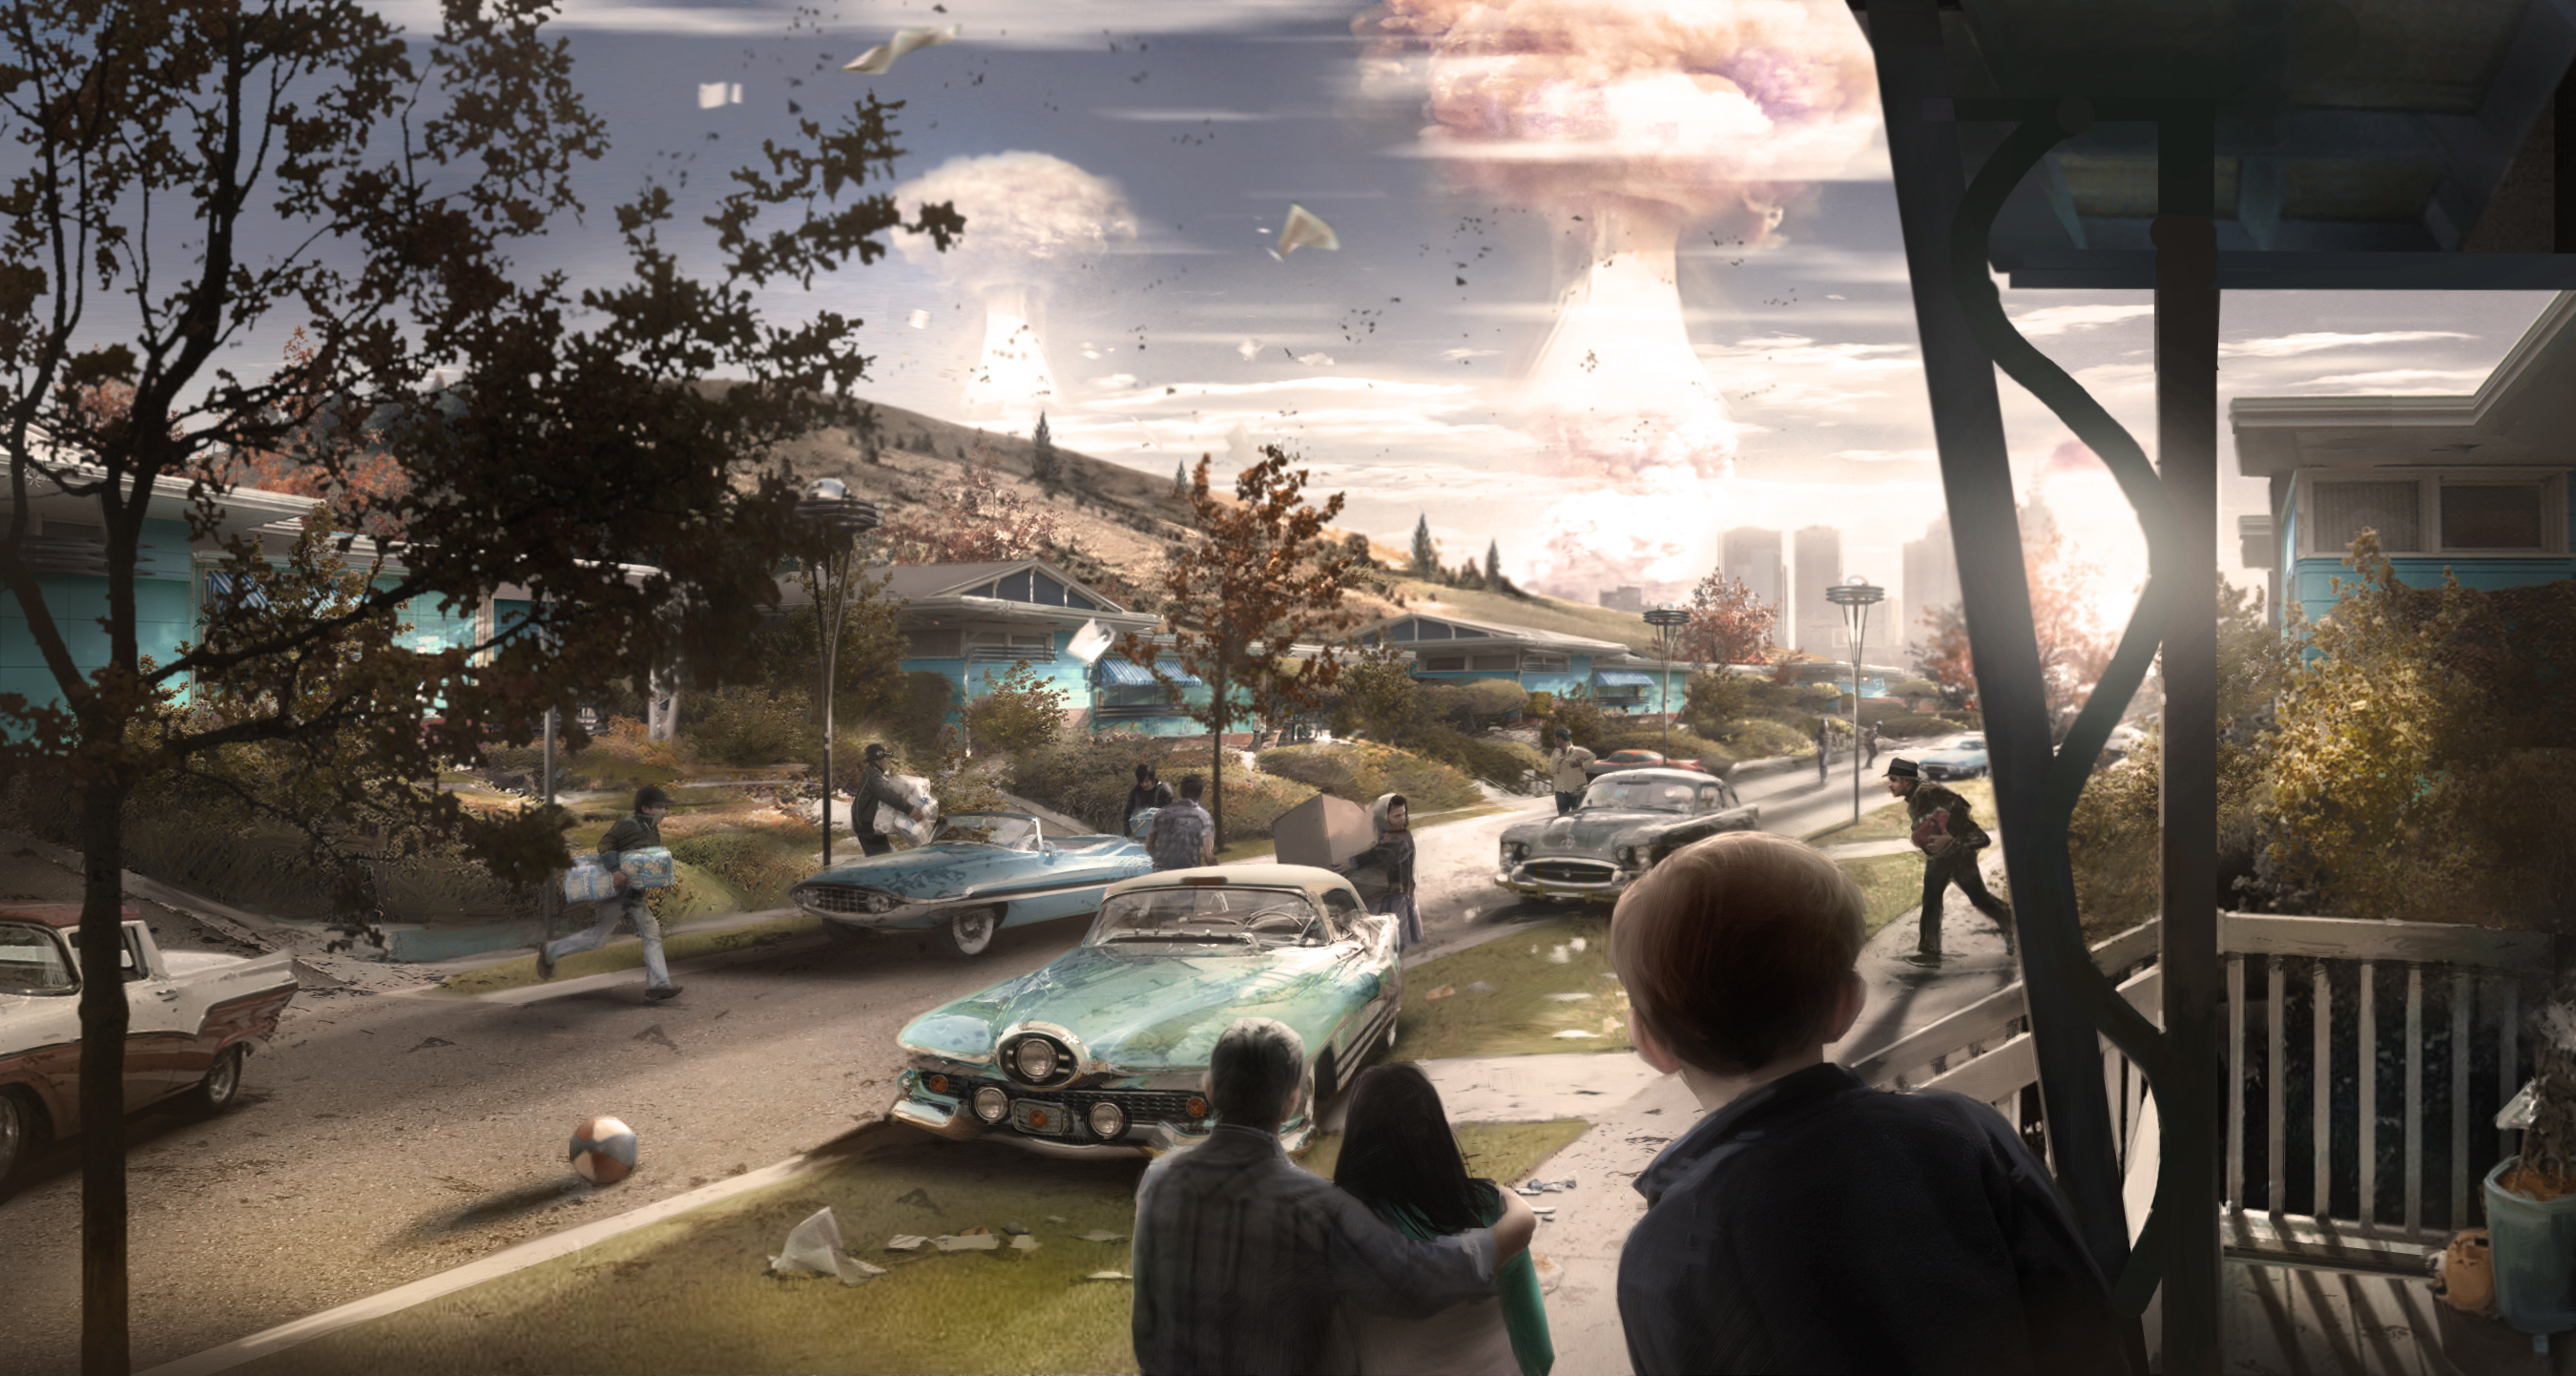 2912914 fallout4 concept blast 1434323459 Fallout 4 Modders Working To Create A Massive New Campaign